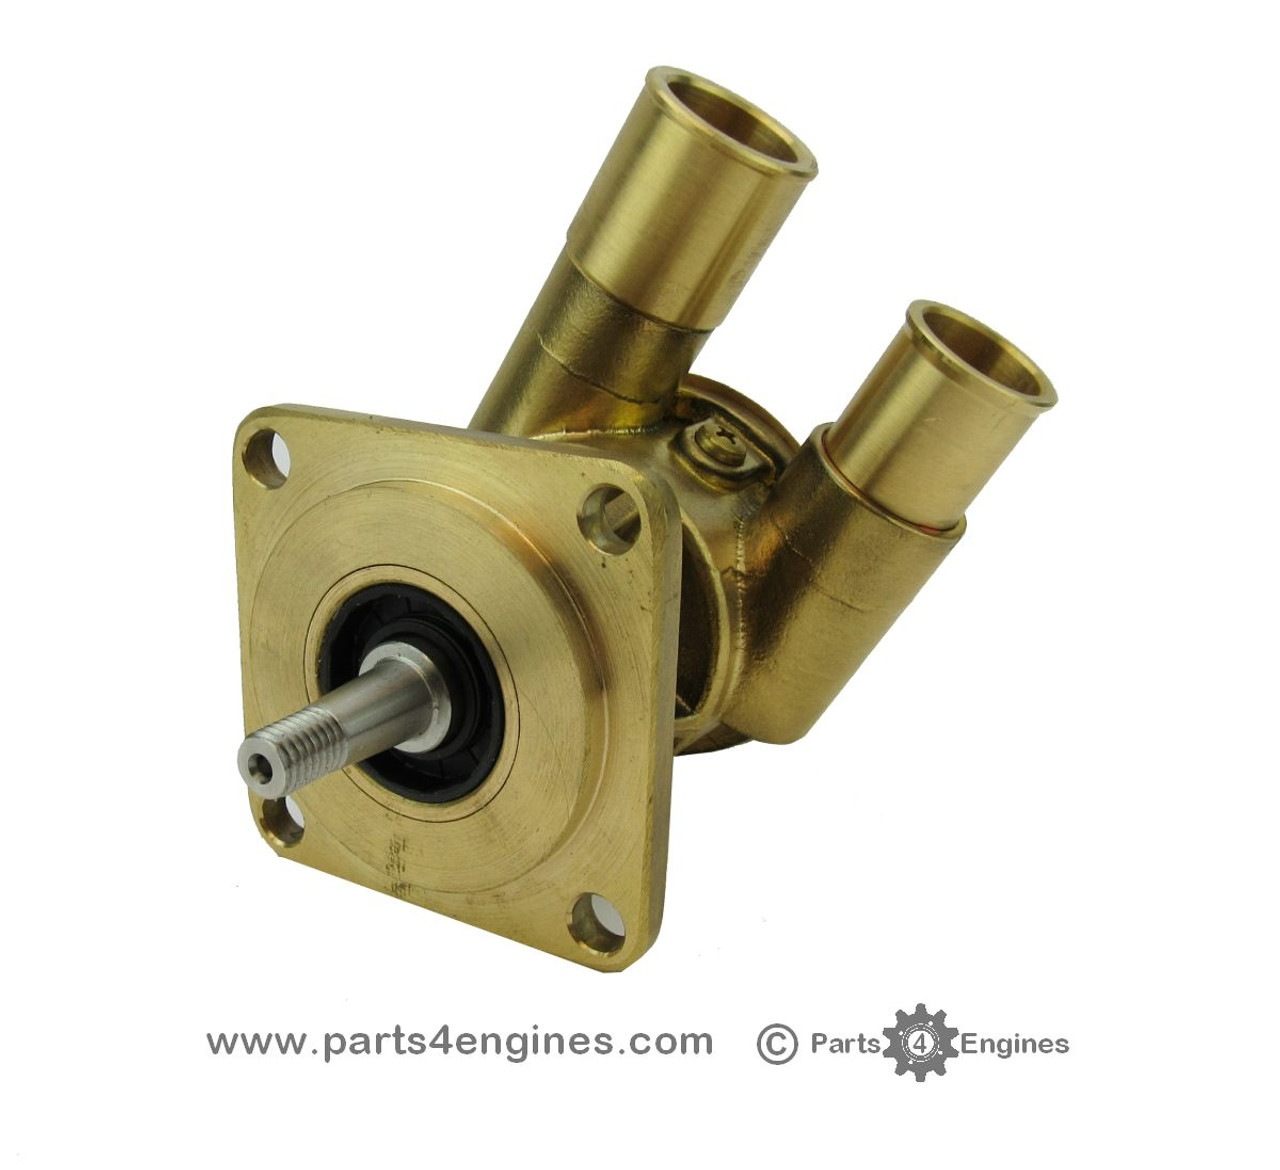 Volvo Penta D2-60 Raw Water Pump, from parts4engines.com